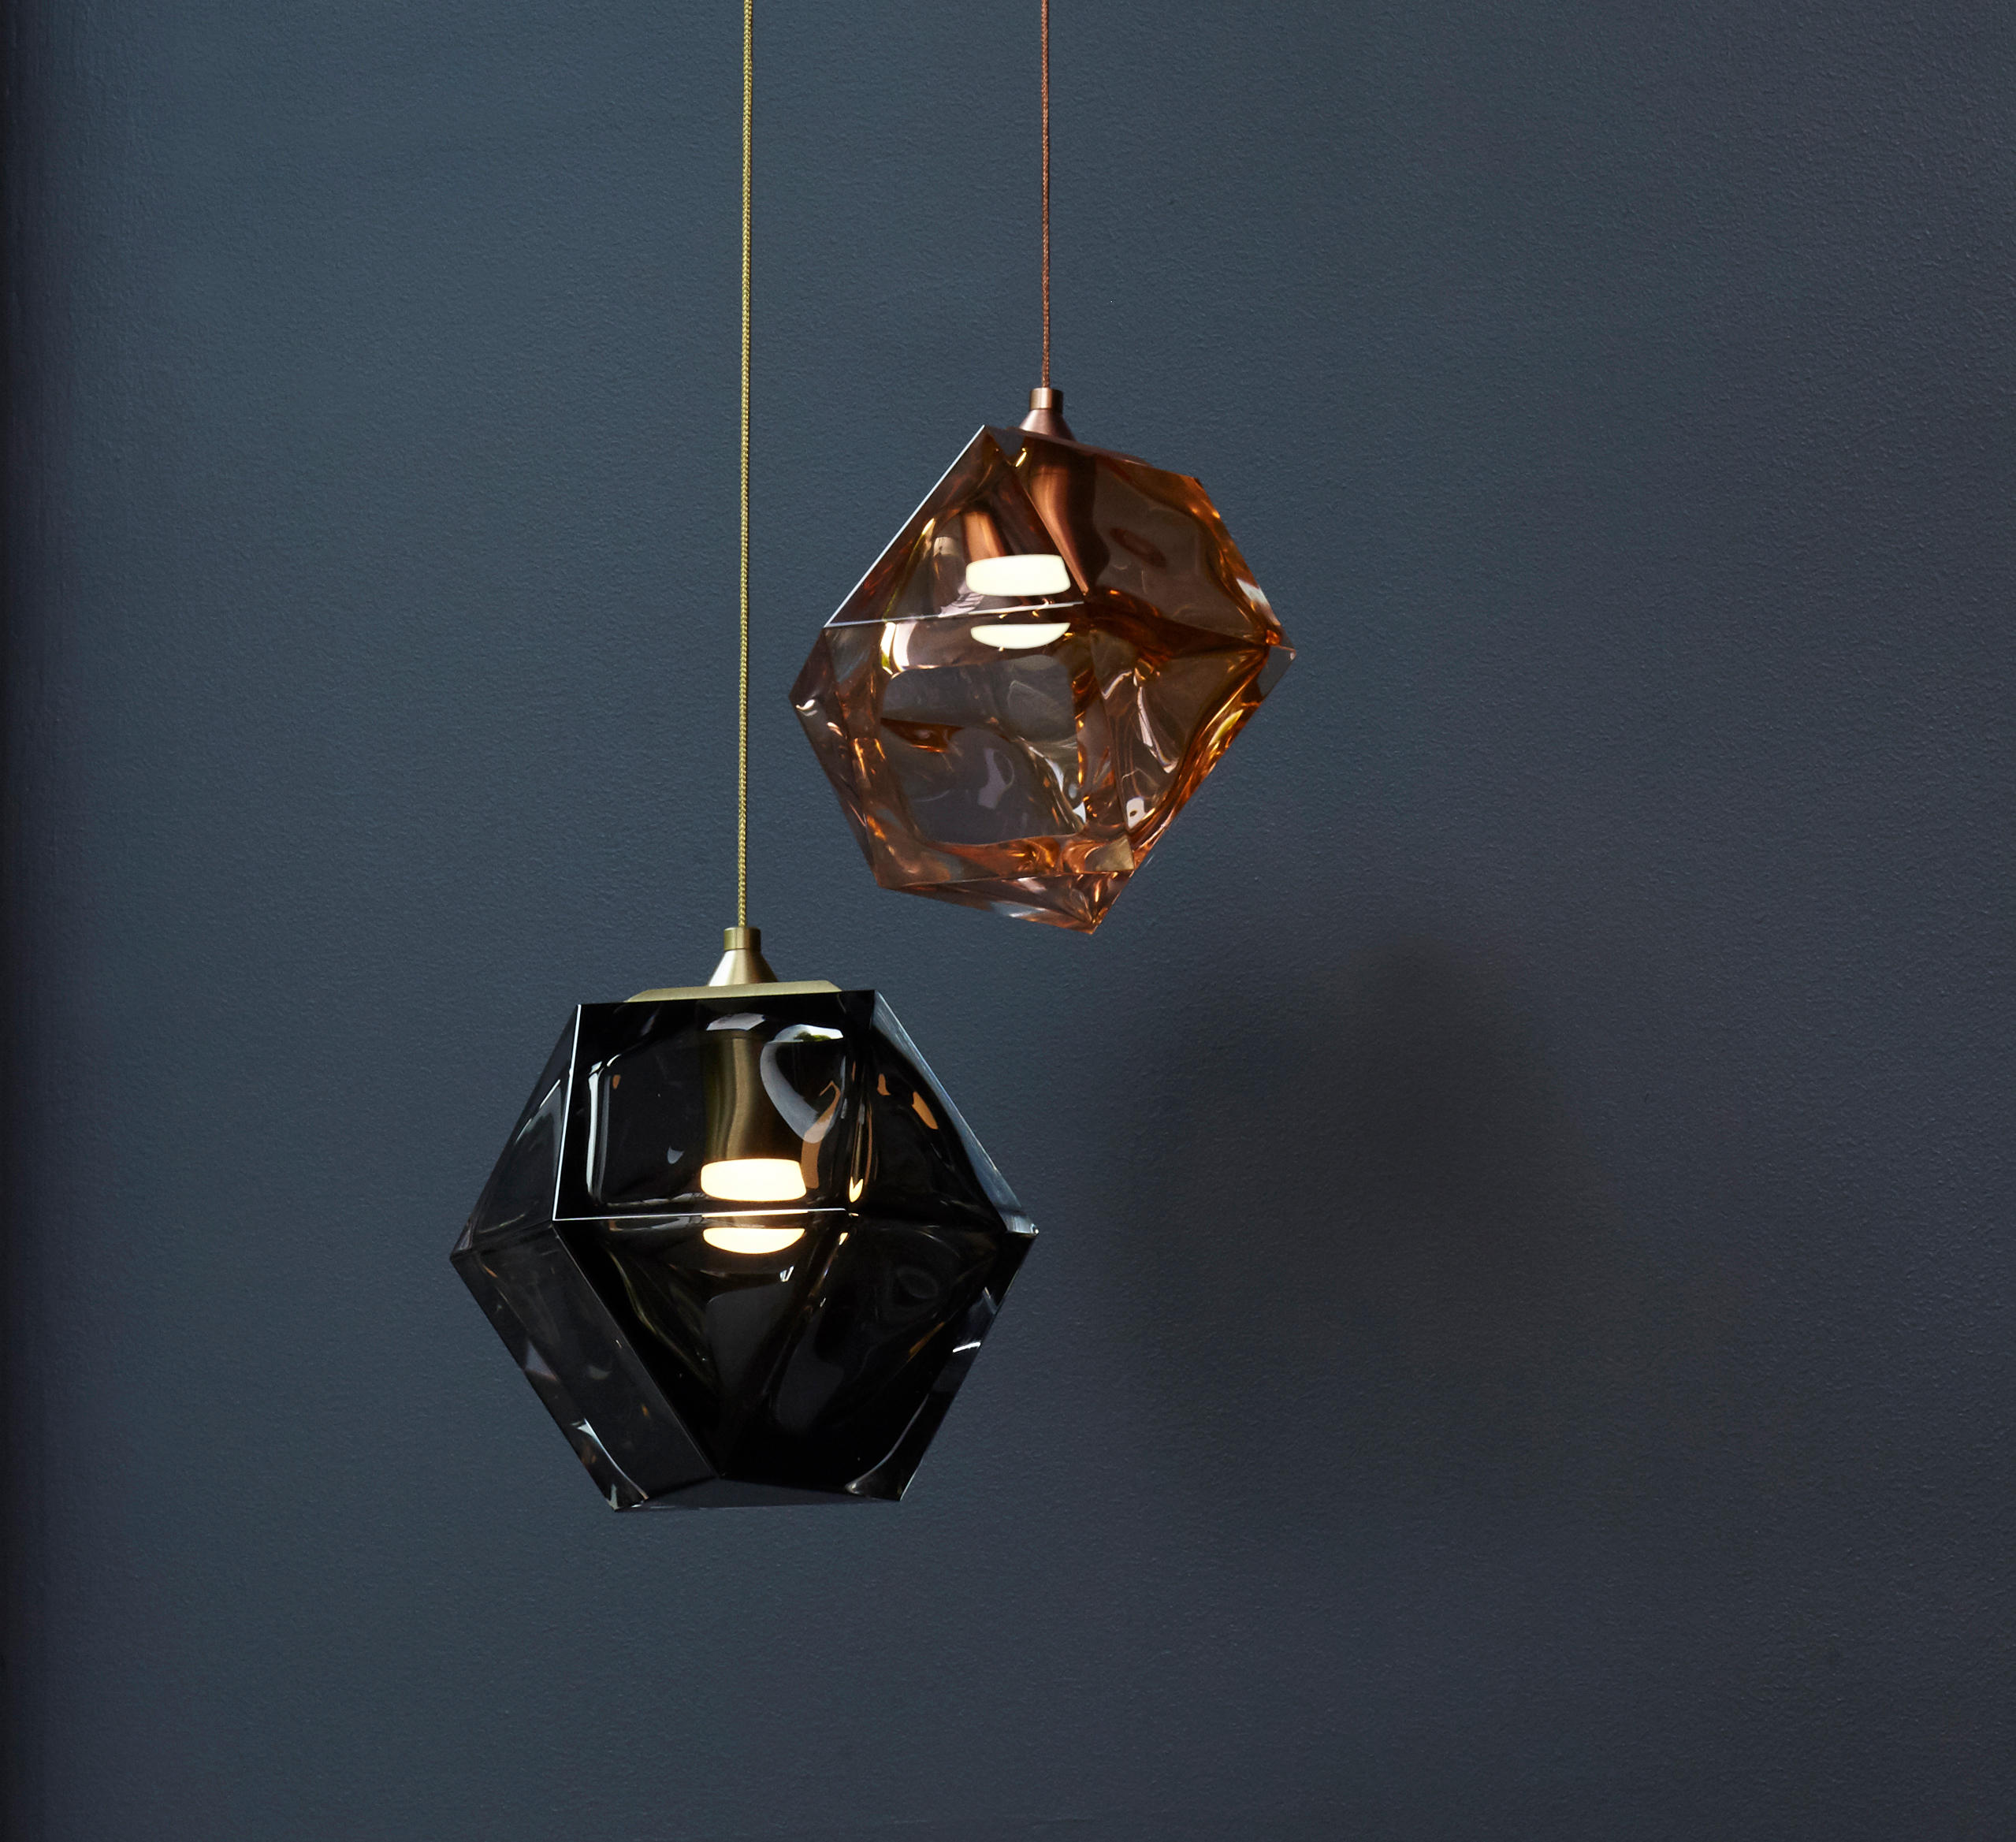 lovely lights new crafted hanging a pendant artisan featuring lighting hand is oona ideas of glass blown an